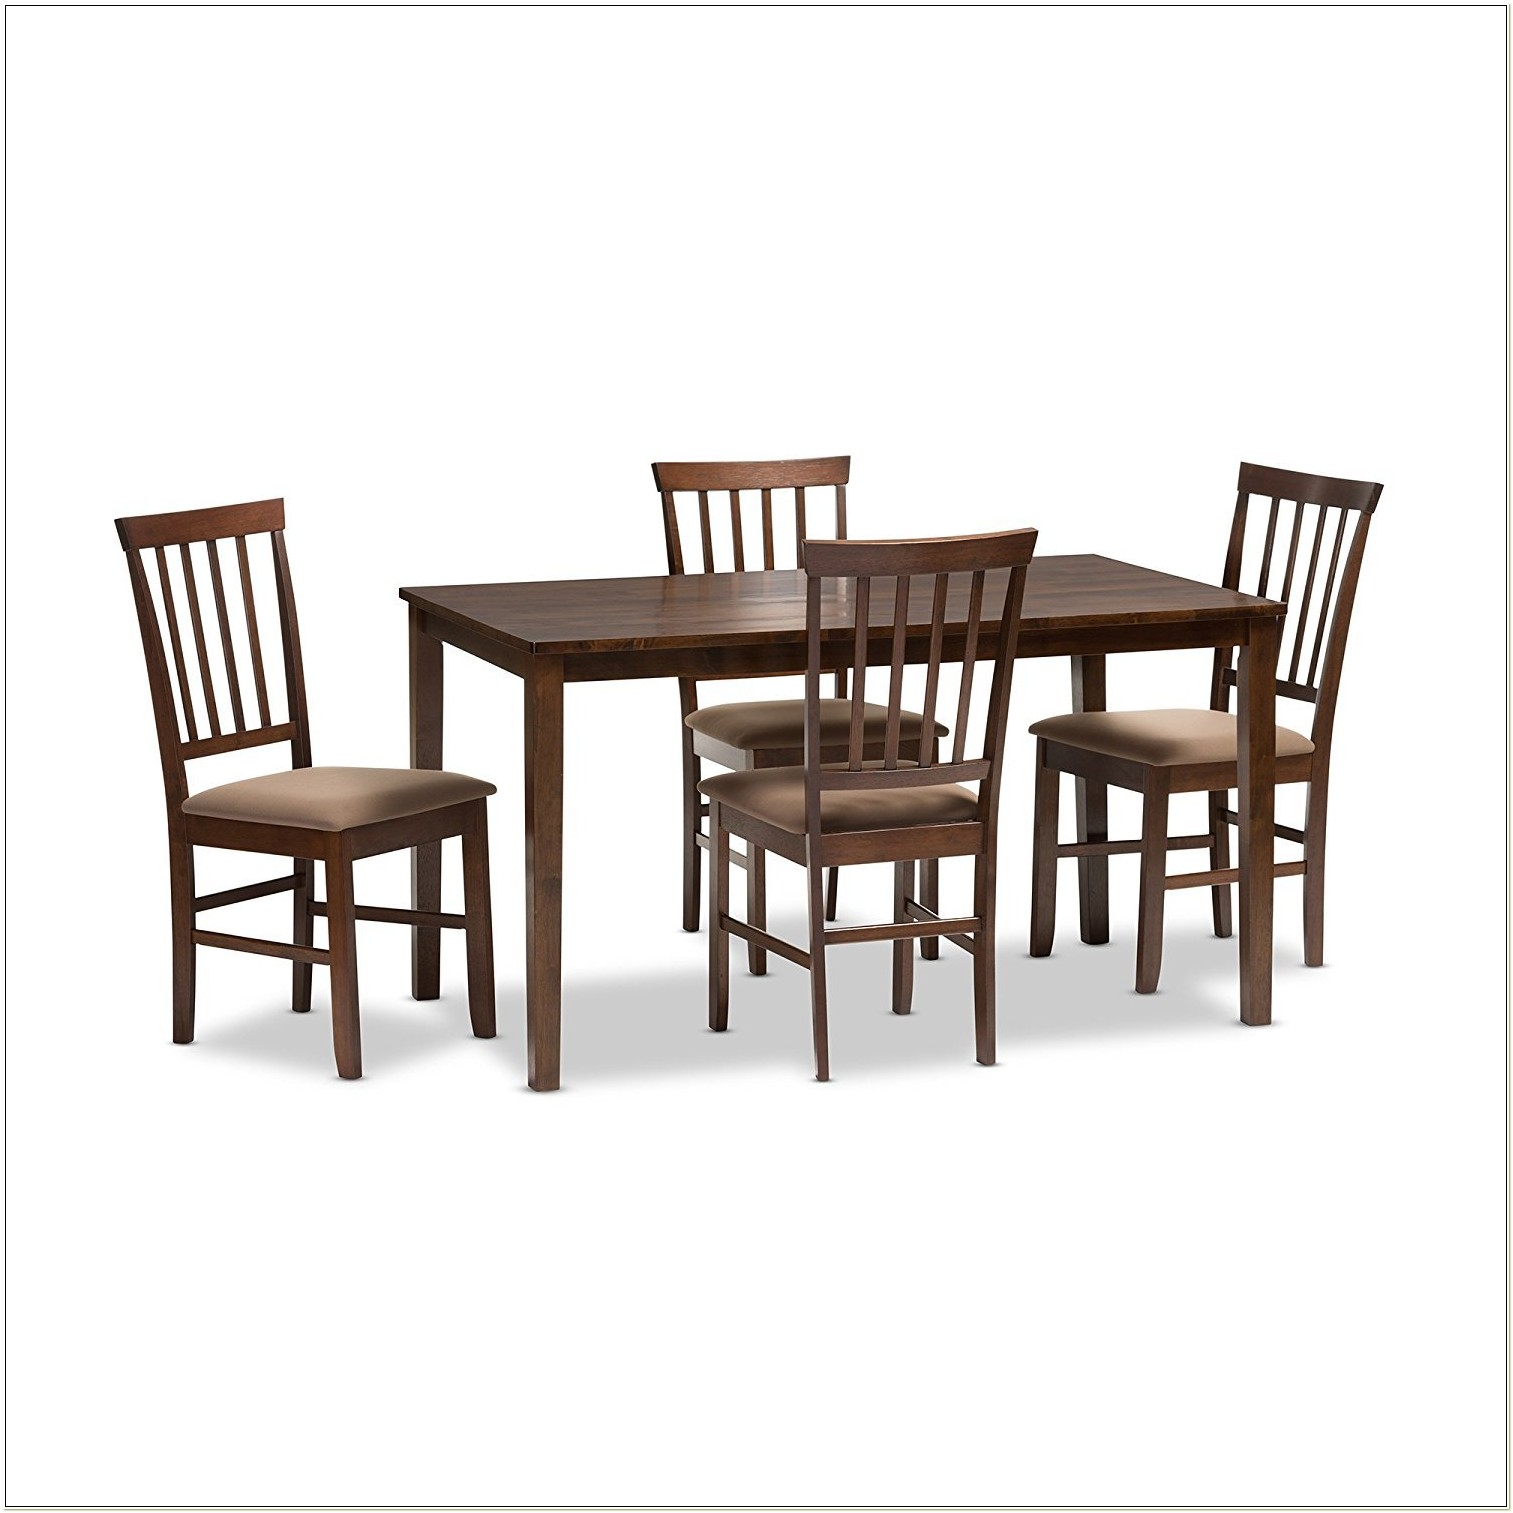 Baxton Studio Tiffany Dining Chair Set